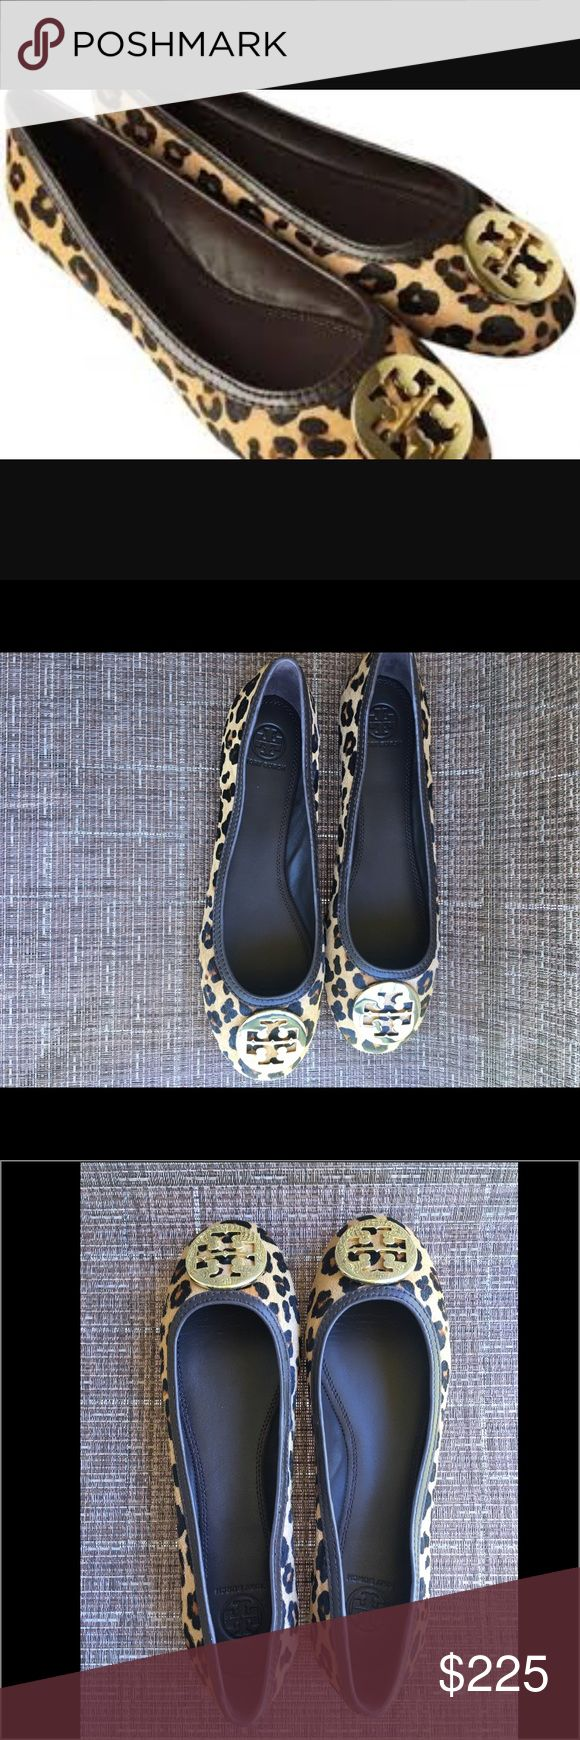 Tory Burch Animal Print Ballet Flats Tory Burch Animal Print Ballet Flats.  NWT. Tory Burch Shoes Flats & Loafers